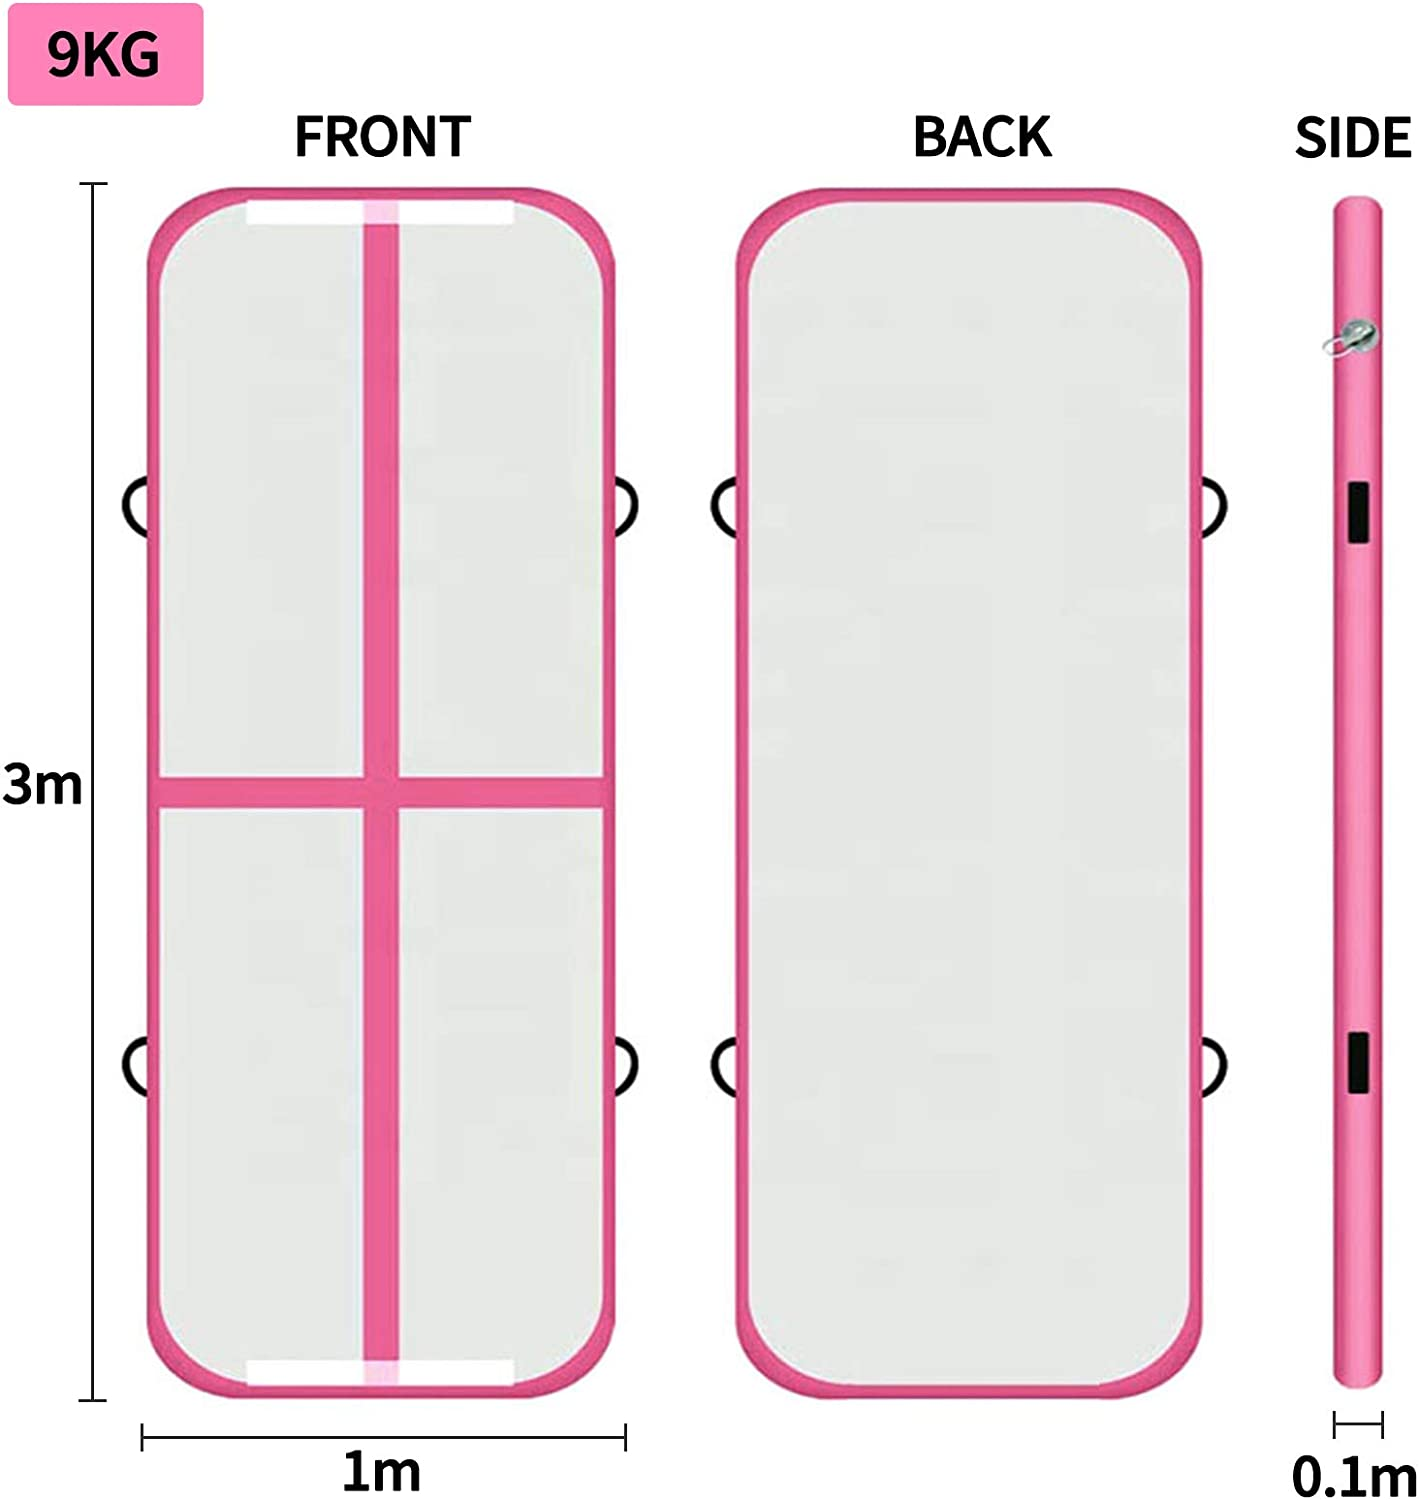 Gymnastics Training Mats 1*3*0.1m pink, 3.3ft*10ft*4in